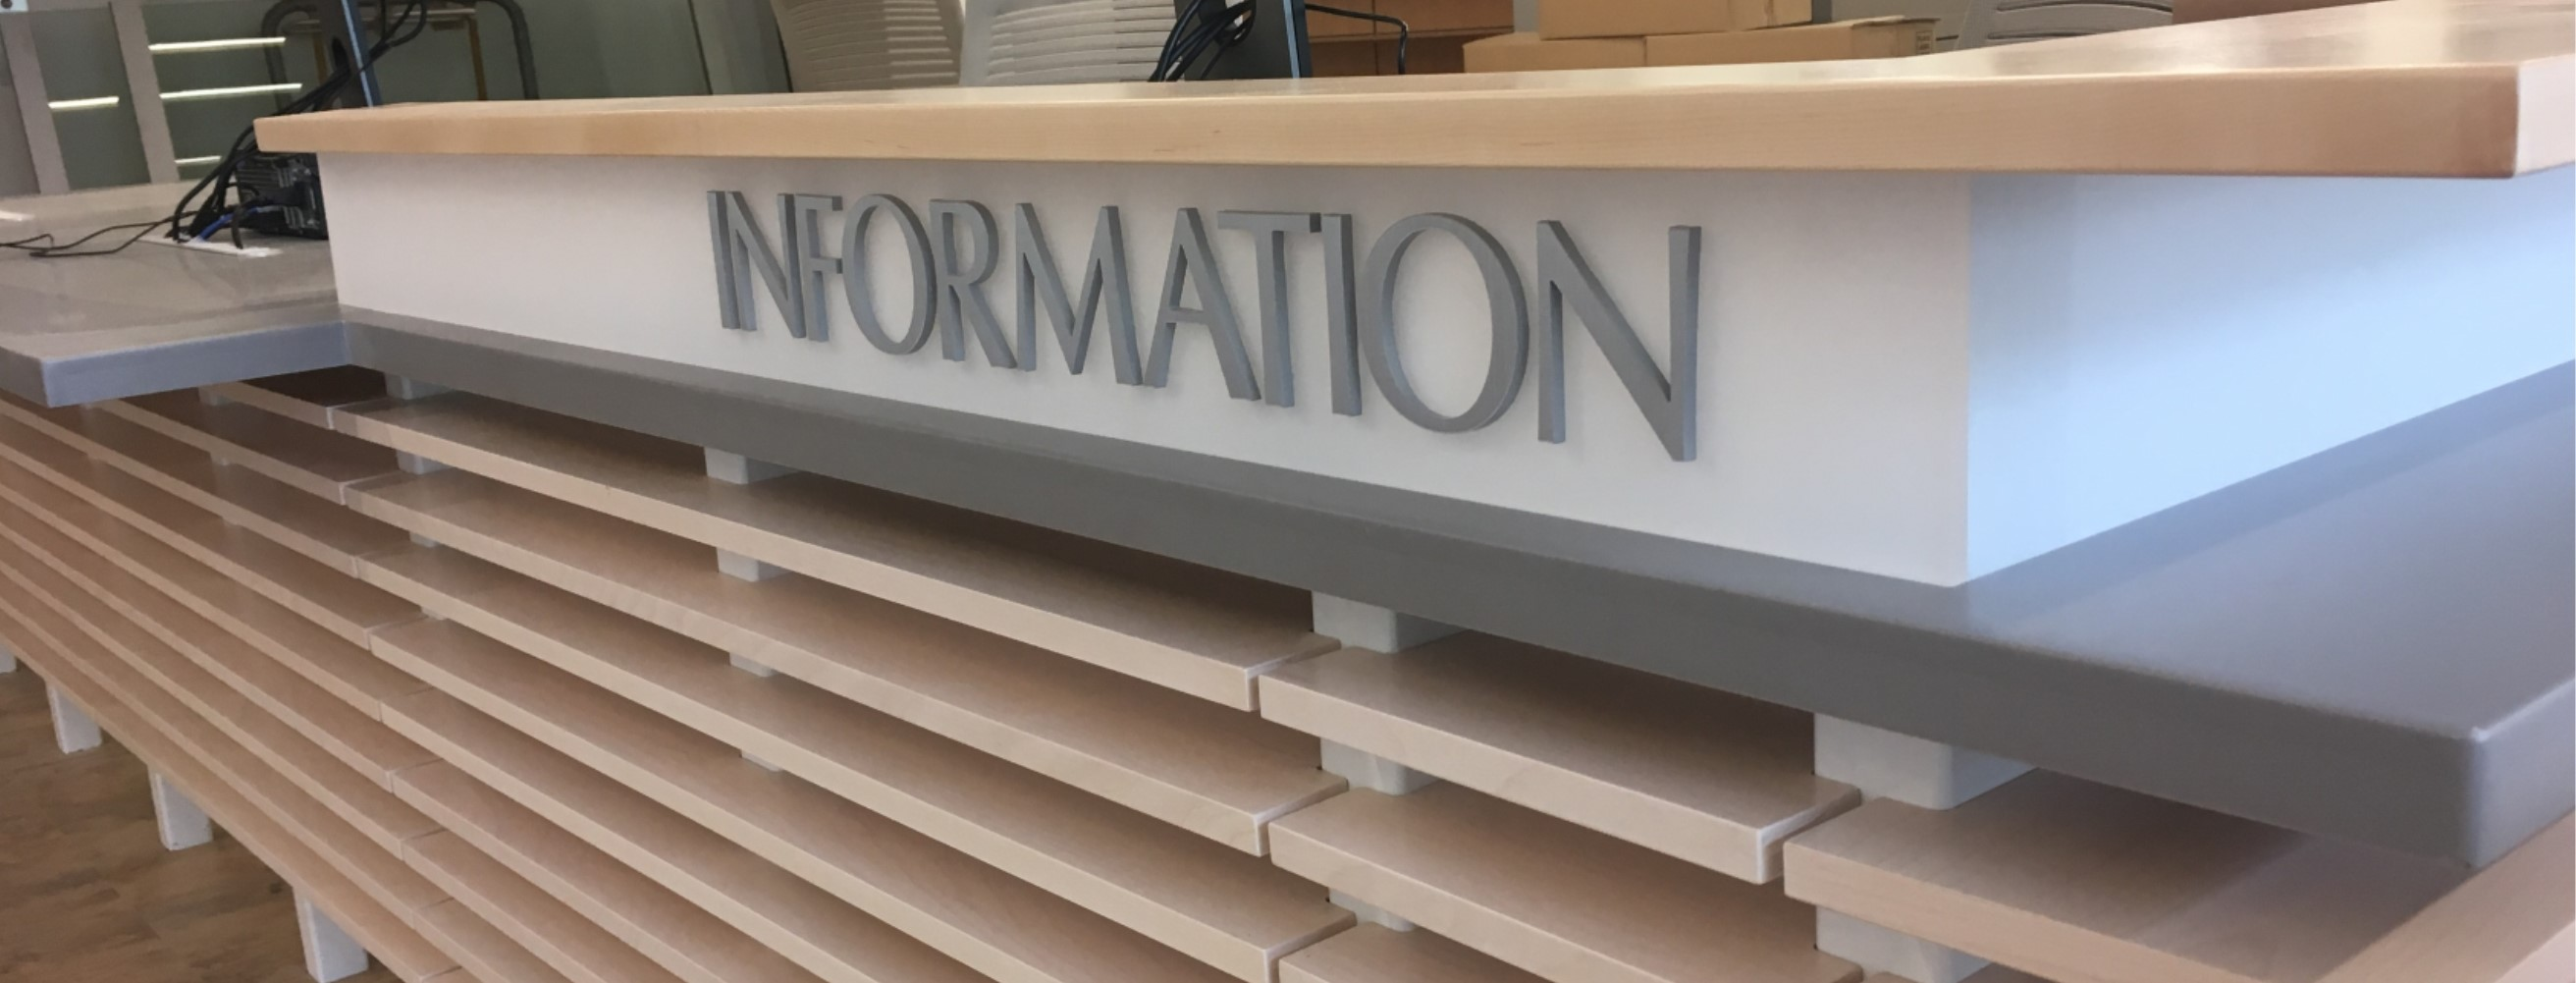 Library Services Information Desk